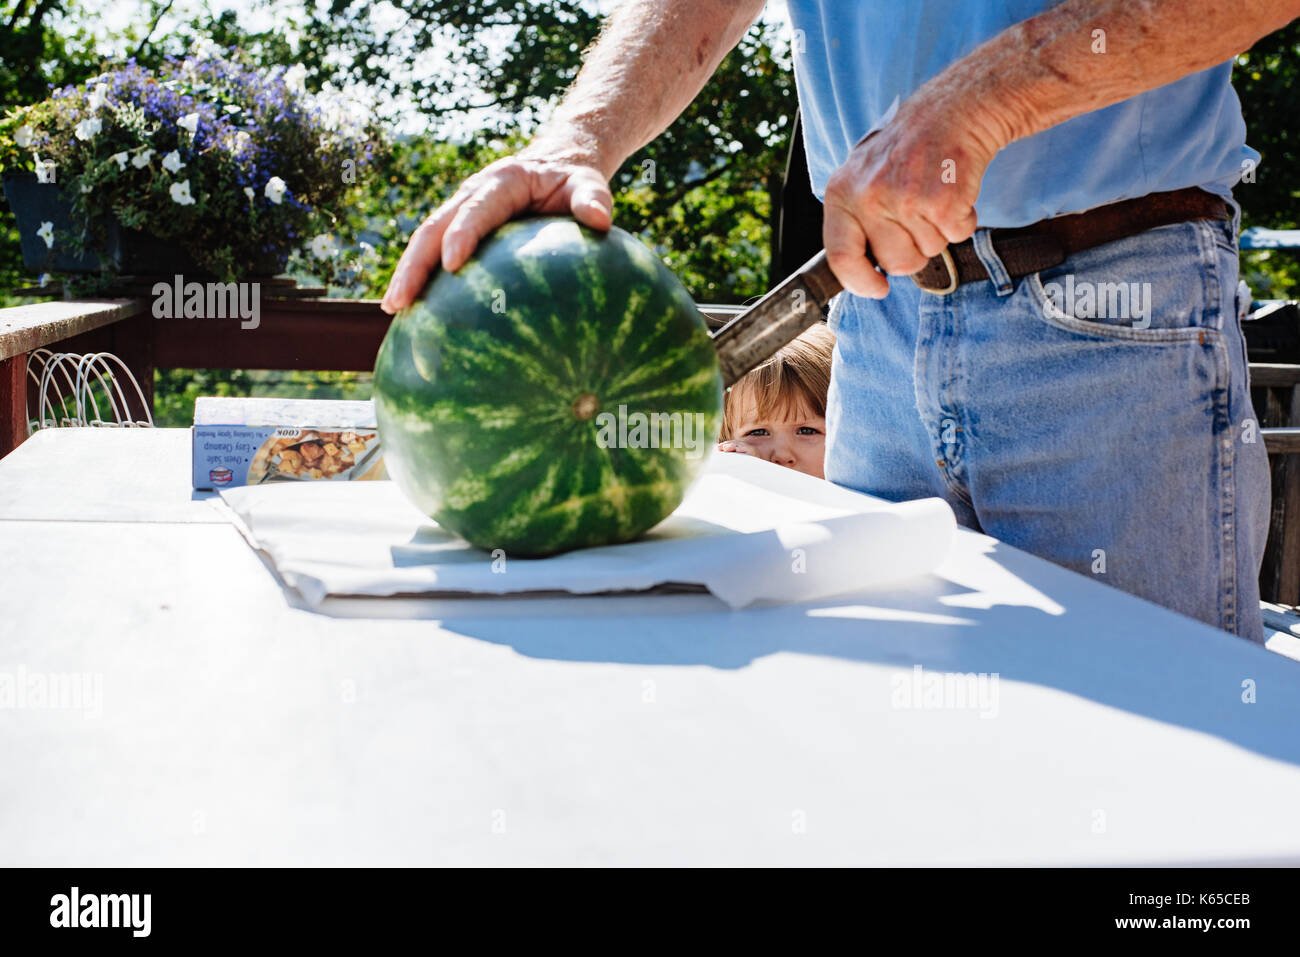 A man cuts a watermelon while a toddler watches. - Stock Image